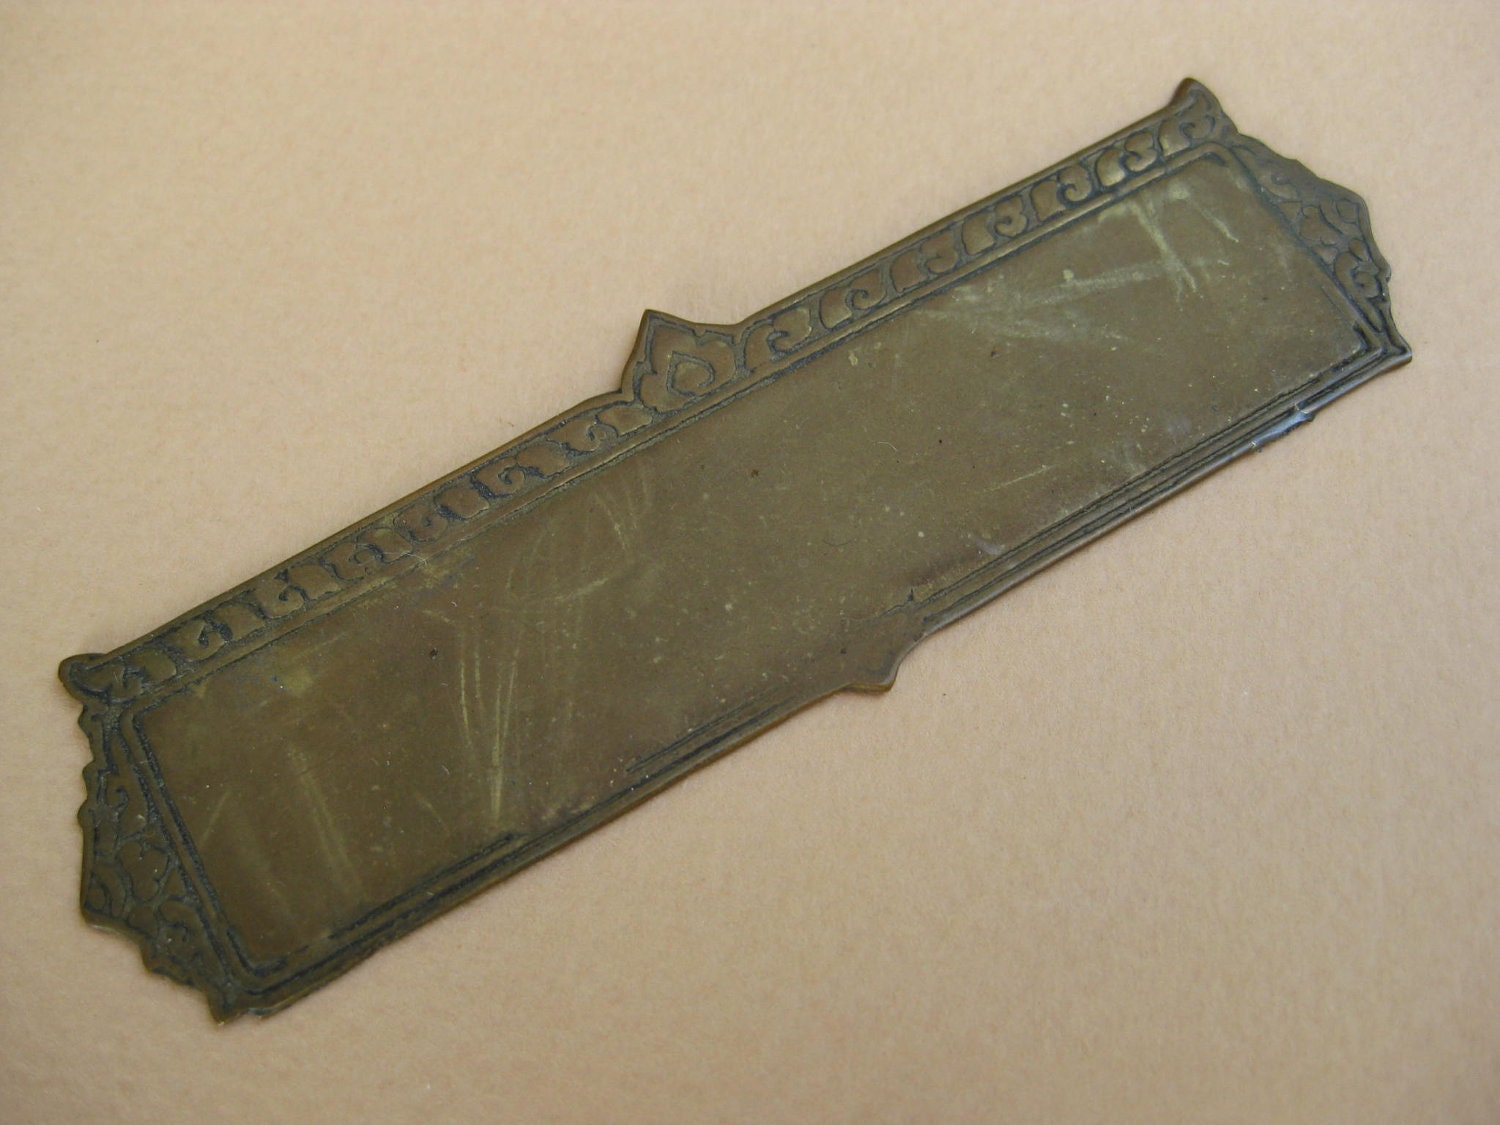 Vintage metal name plate plaque tag finding for Classic house name plates